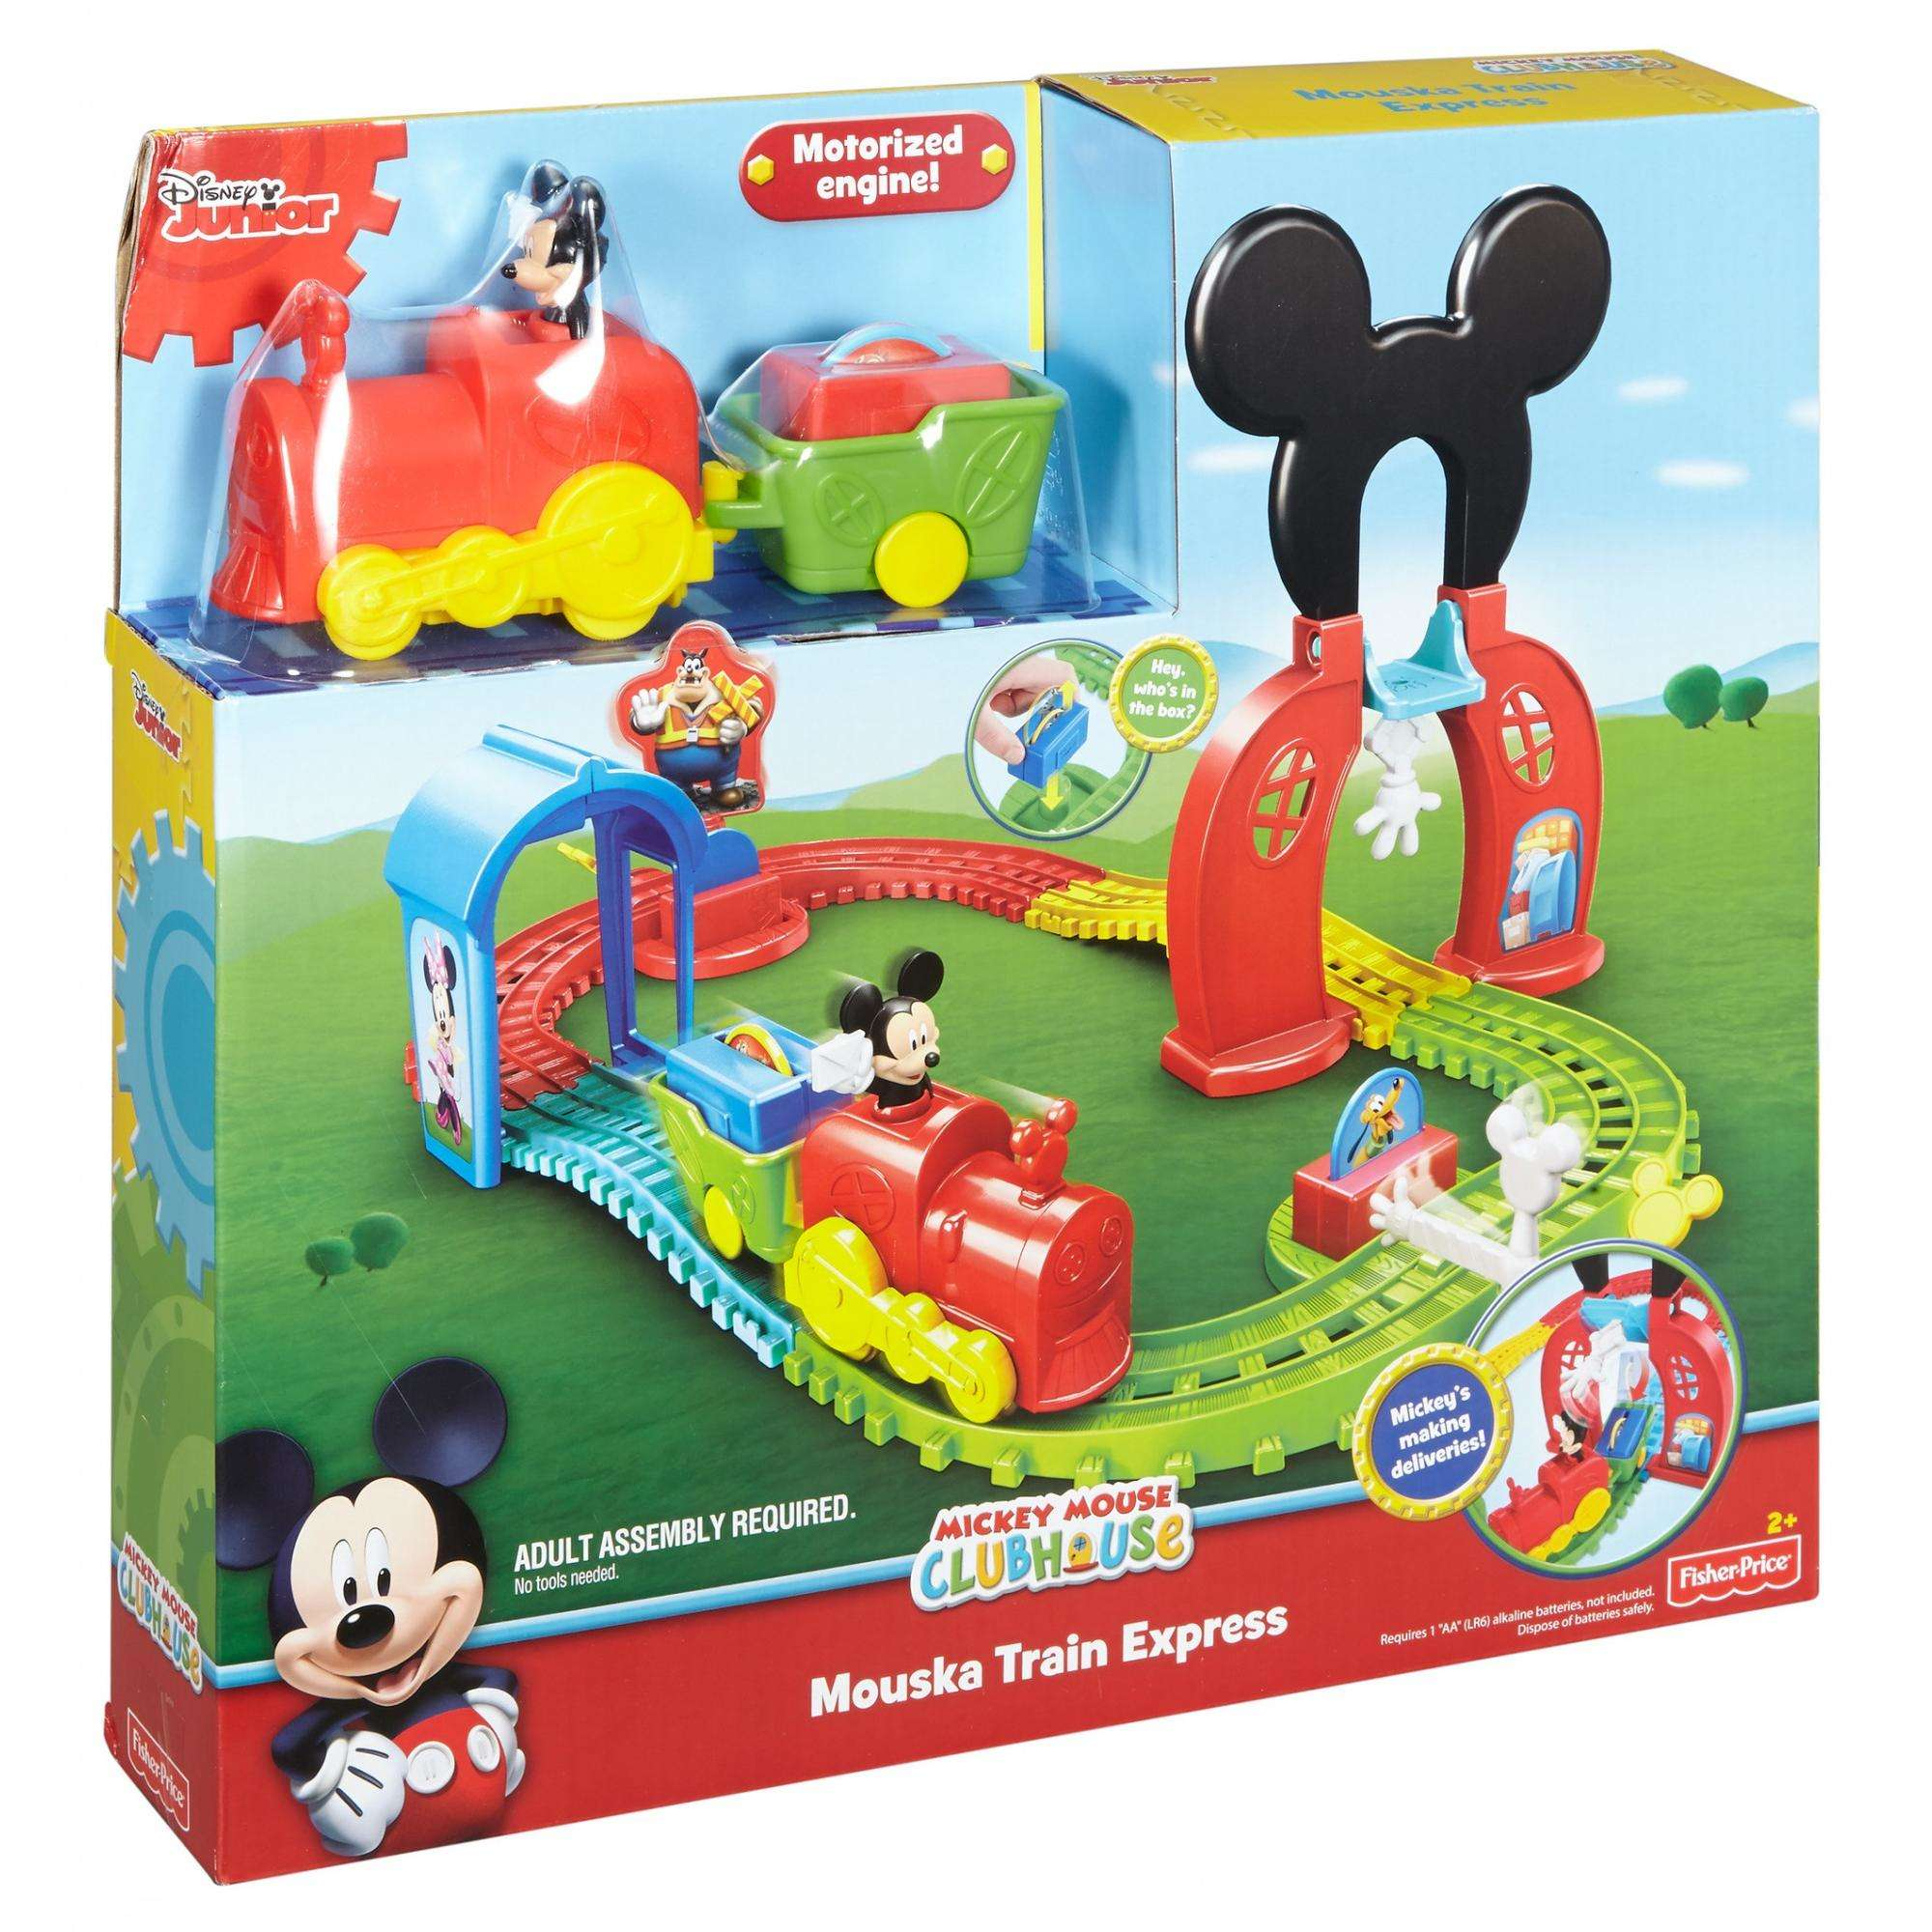 Popular Disney Mickey Mouse Mouska Train Express Playset Fisher Price Train Track Setup Fisher Price Train Ebay baby Fisher Price Train